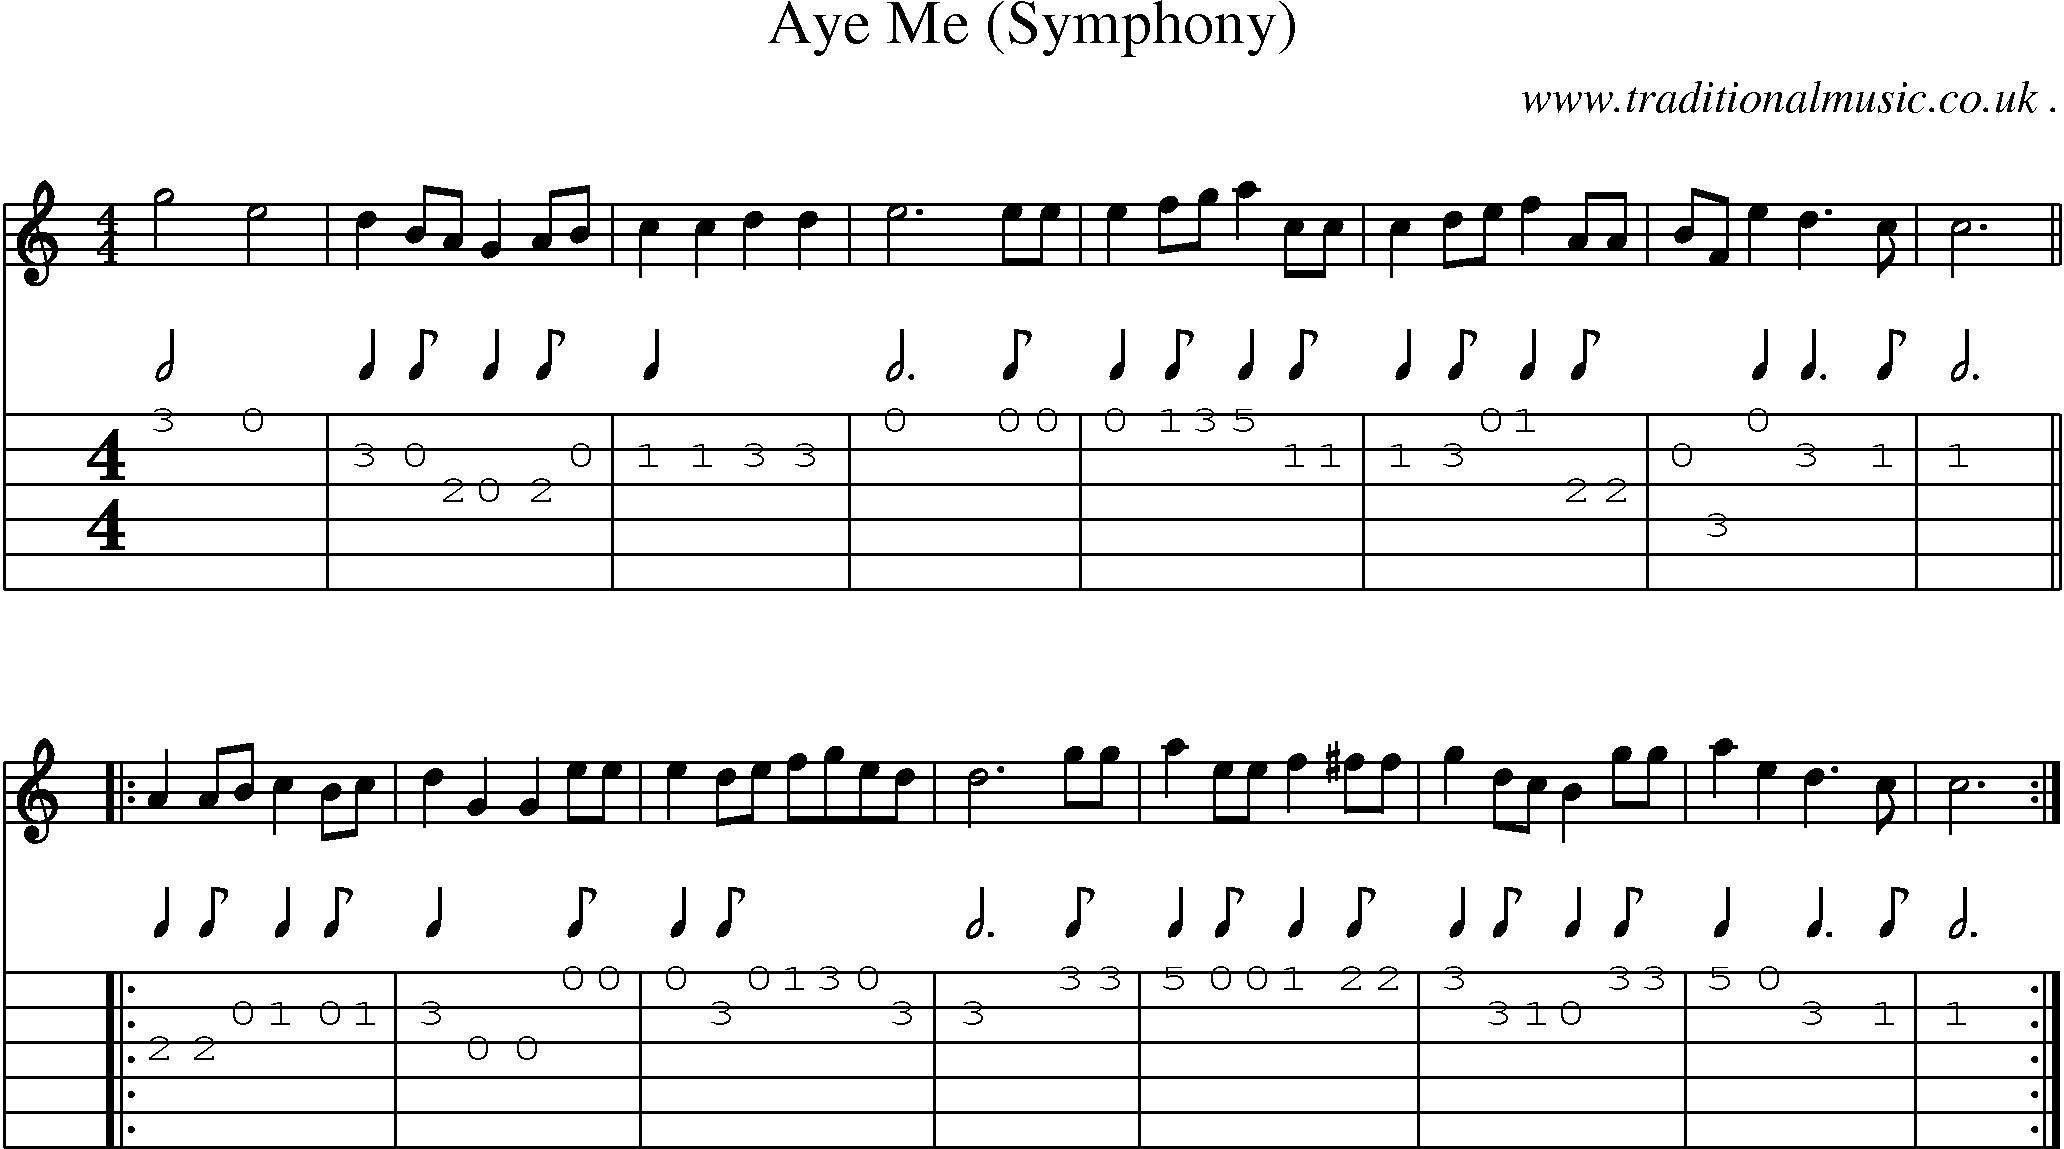 Folk and Traditional Music, Sheet-Music, Guitar tab, mp3 audio, midi and PDF for: Aye Me (symphony)